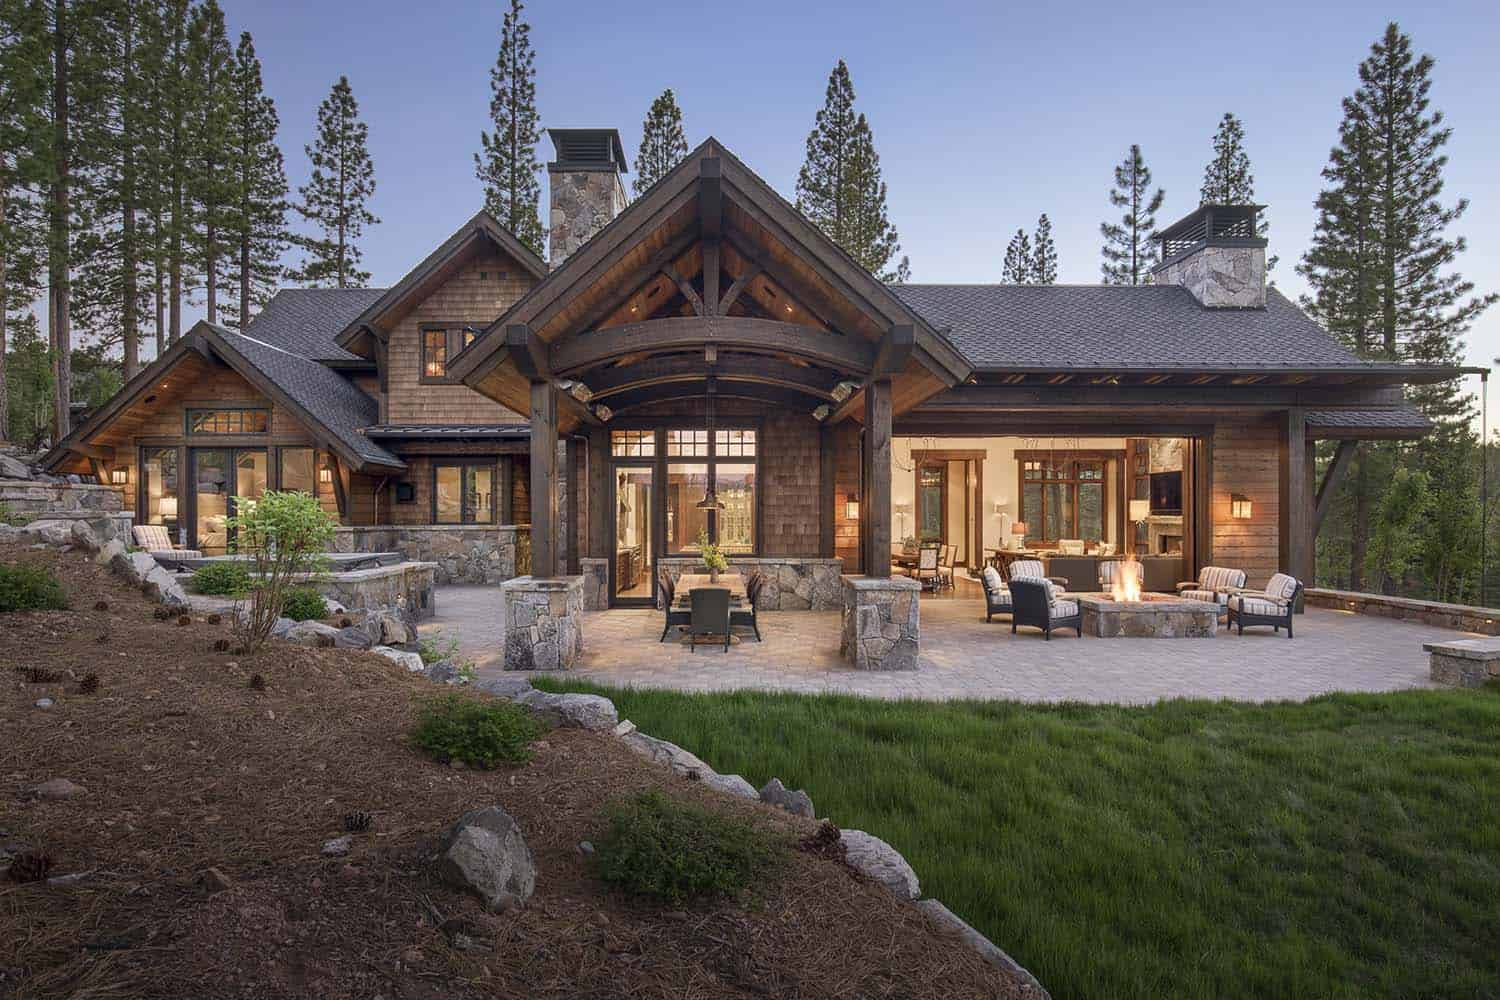 Gorgeous Rustic Mountain Retreat With Stylish Interiors In